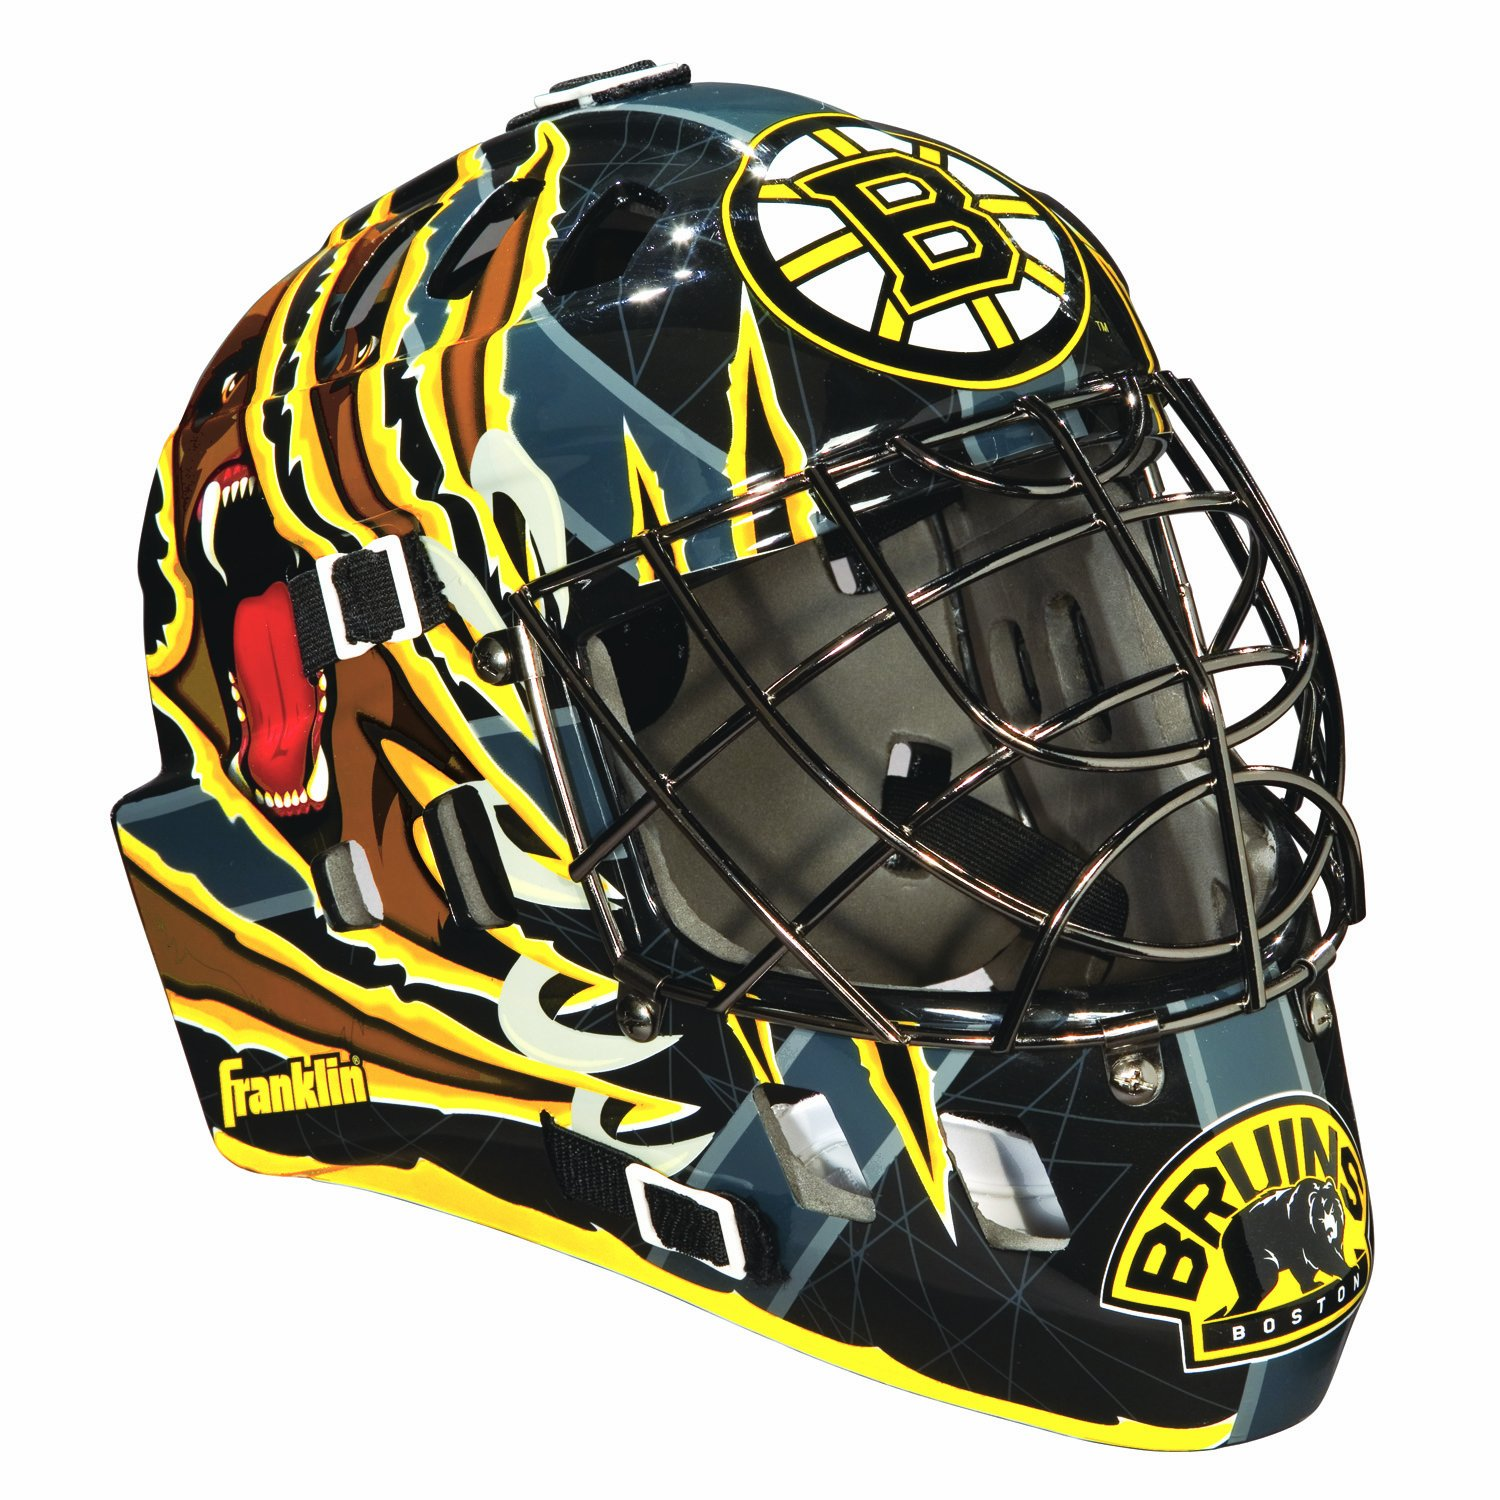 Franklin Sports NHL Boston Bruins SX Comp GFM 100 Goalie Face Mask by Franklin Sports (Image #1)